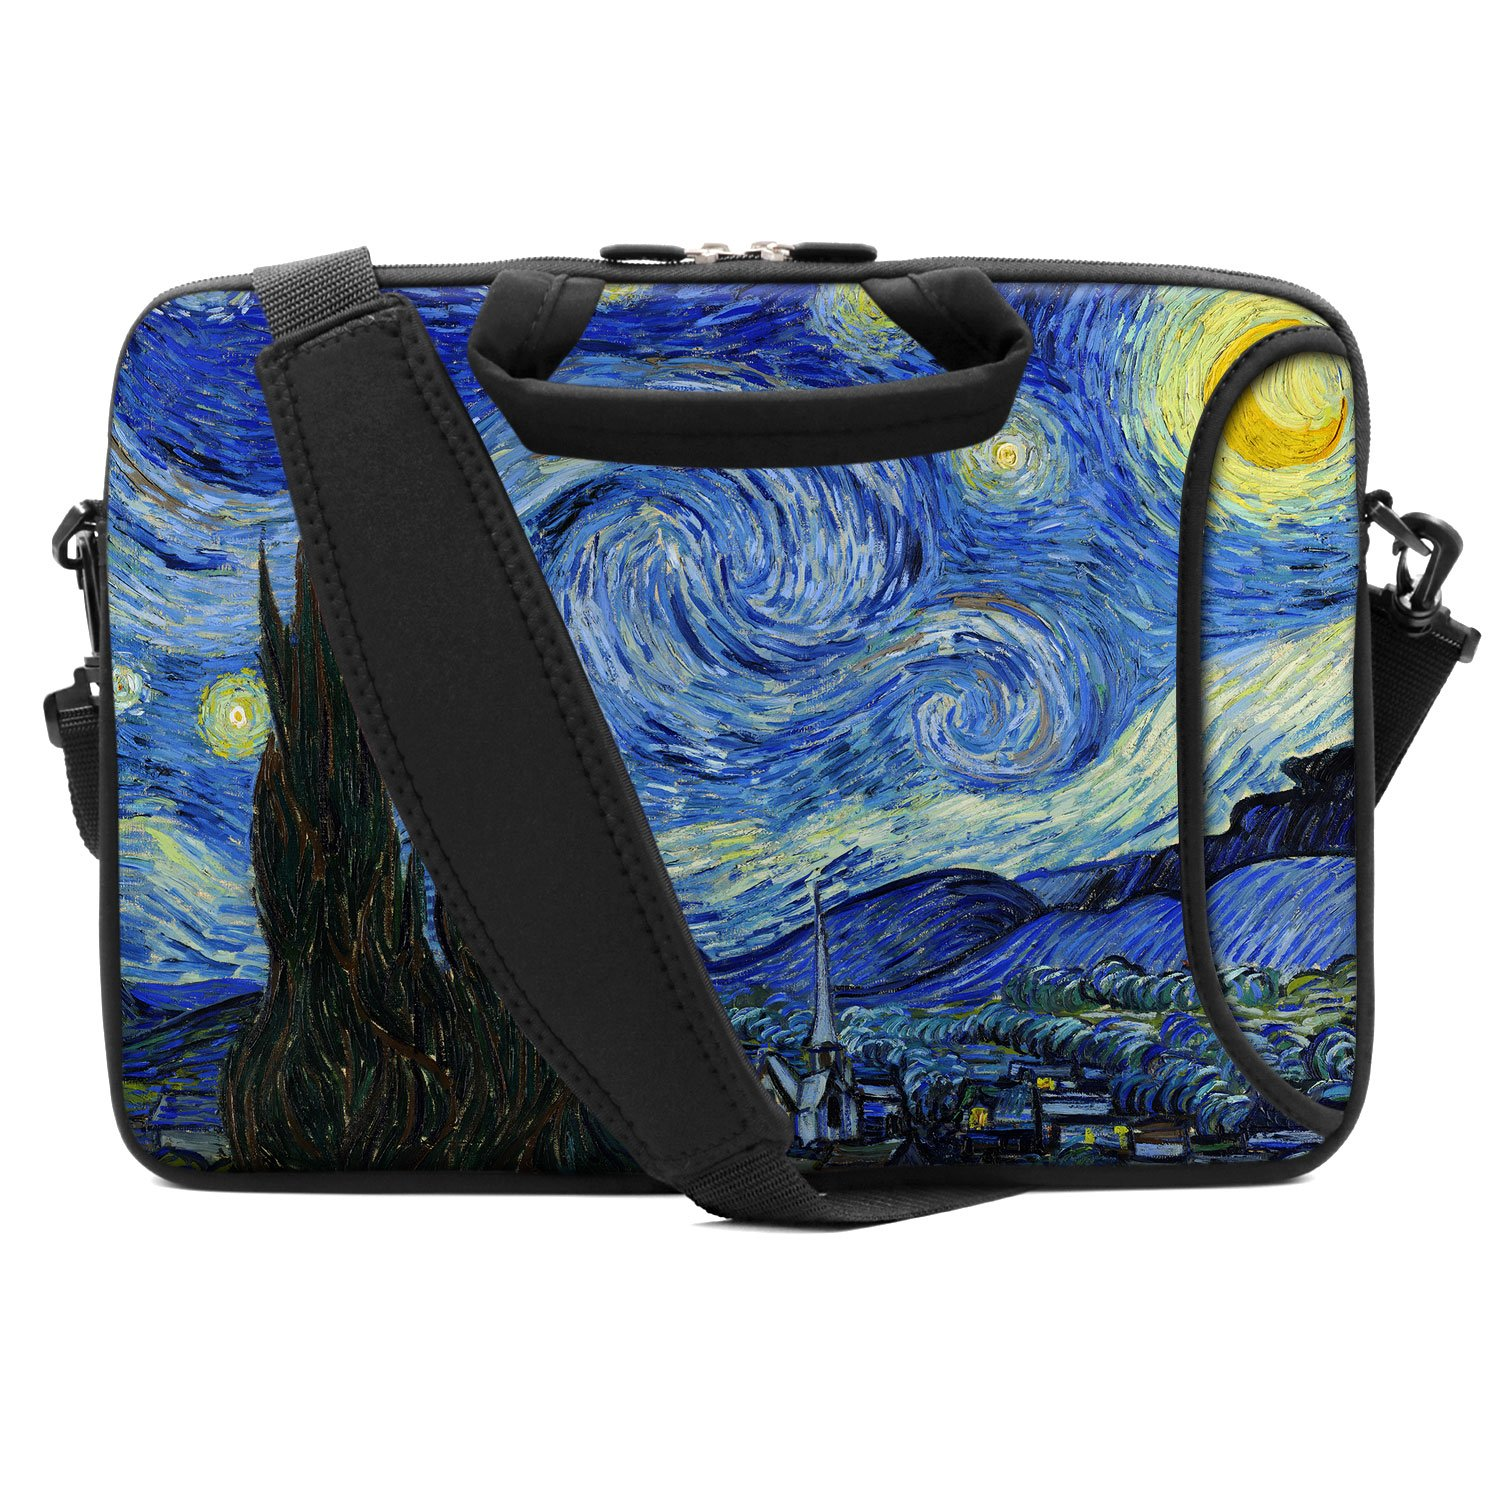 HAOCOO Stylish Artwork Design Ultraportable Waterproof Neoprene Laptop Bag Sleeve with Padded Handle, Adjustable Shoulder Strap & External Side Pocket, Fits 13-13.3 Inch Laptops, Starry Night